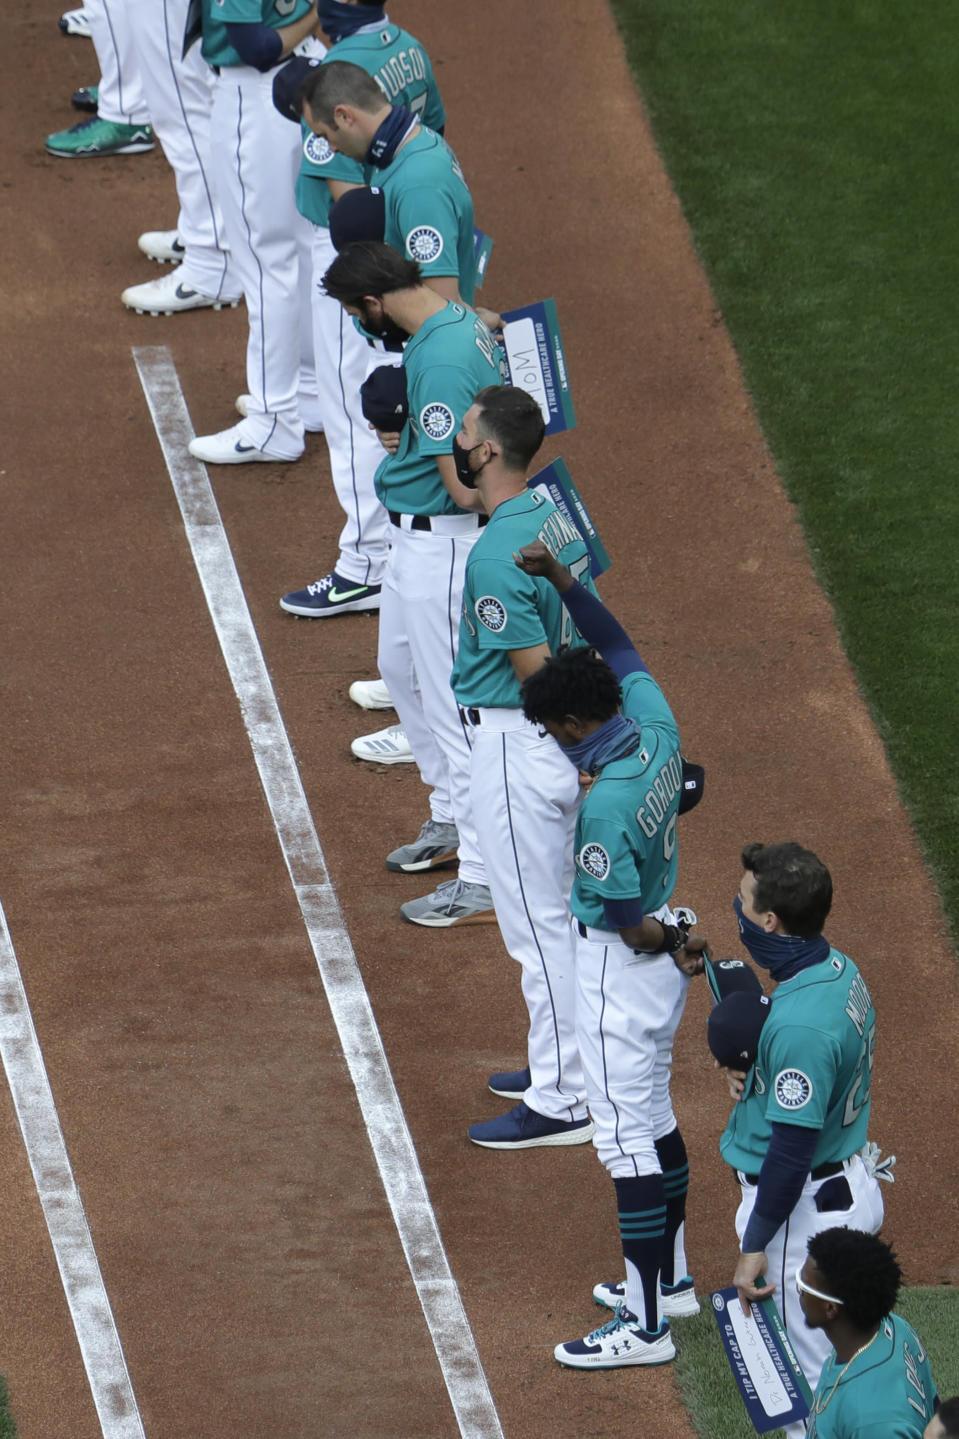 Seattle Mariners left fielder Dee Gordon (9) raises his fist during the singing of the national anthem before the Mariners' home opener baseball game against the Oakland Athletics, Friday, July 31, 2020, in Seattle at T-Mobile Park. (AP Photo/Ted S. Warren)